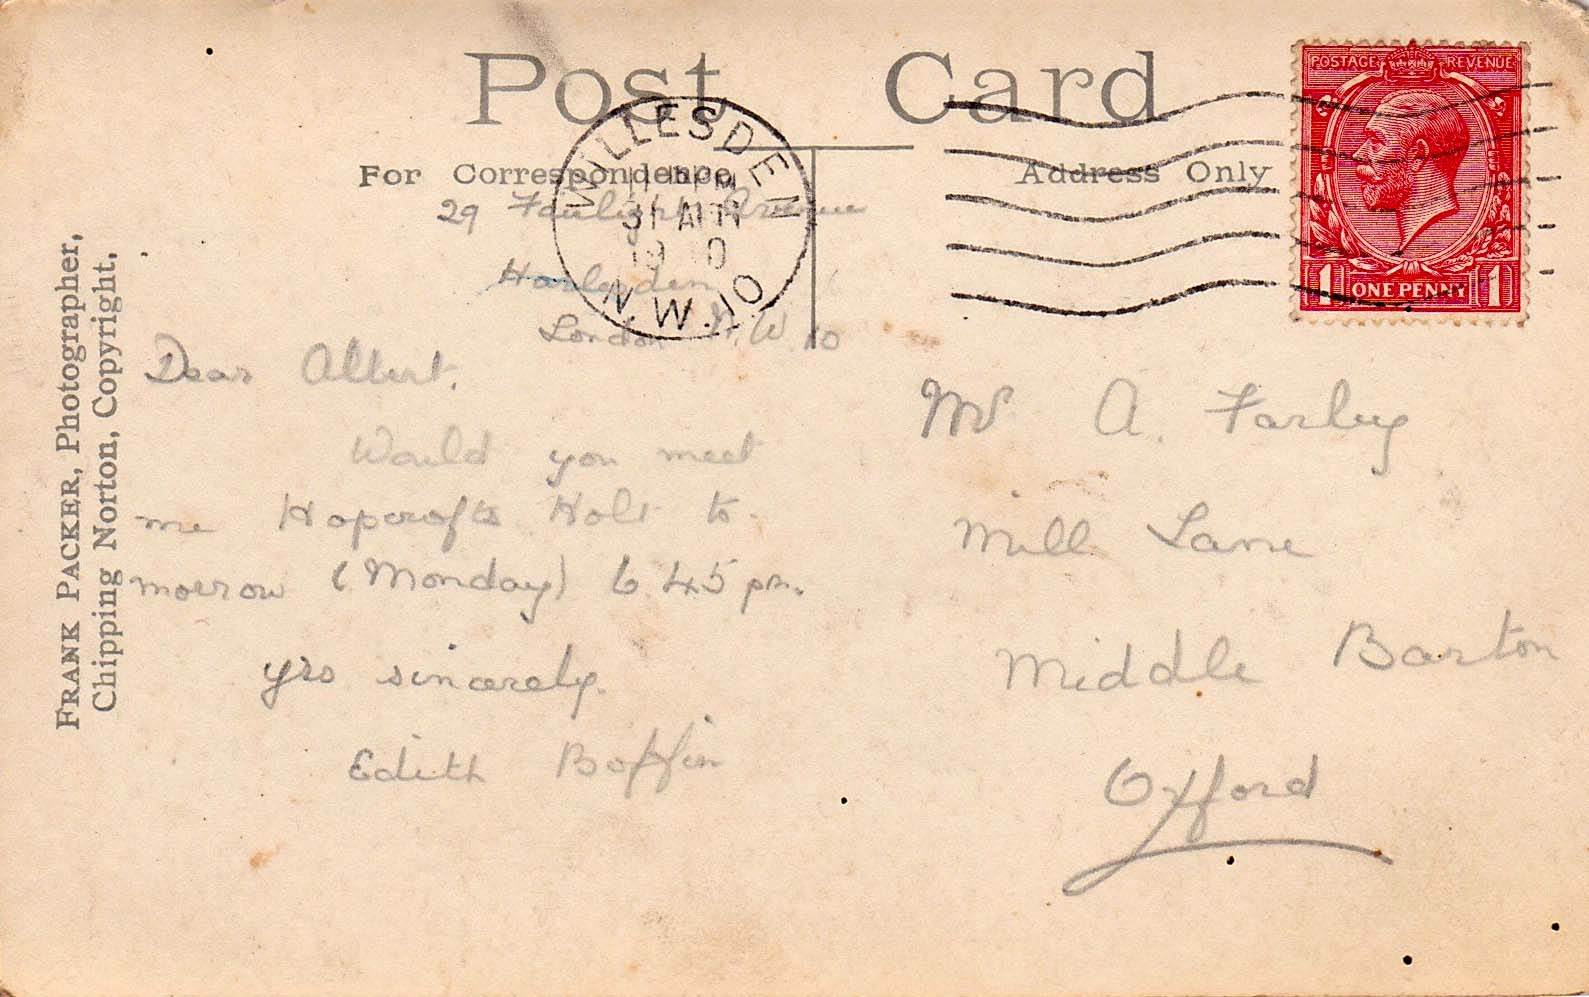 1920. Postcard from Edith Boffin to Mr. A. Farley arranging an appointment at Hopcroft's Holt.